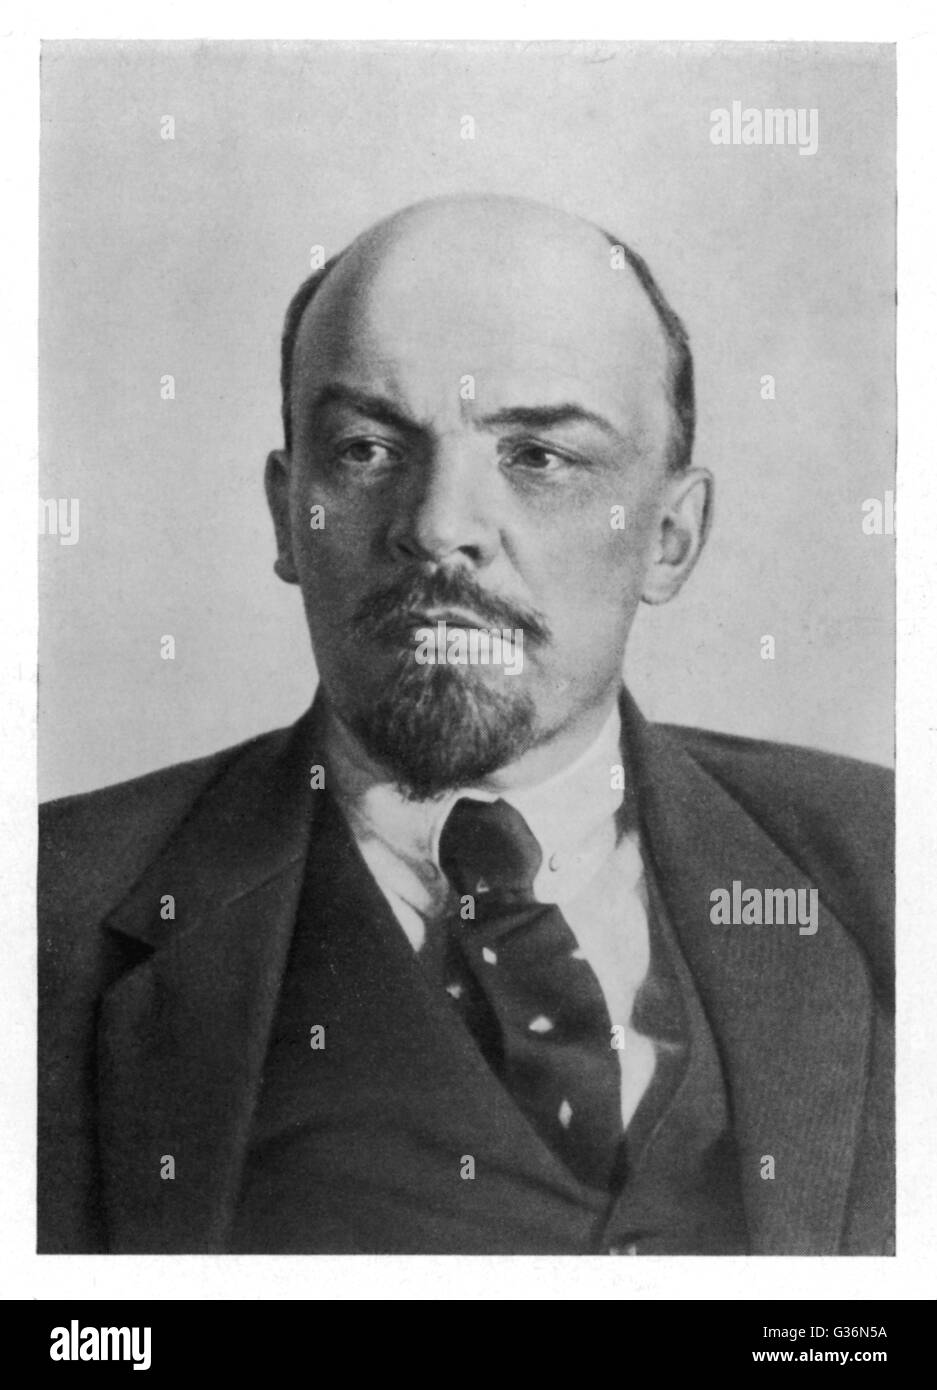 a biography of vladimir ilyich lenin a russian leader Vladimir ilyich lenin, founder of the russian communist party, leader of the bolshevik revolution of 1917, and first head of state of the union of soviet socialist republics, was also a masterly political thinker whose theories shaped communist thought and influenced all factions of the marxist movement.